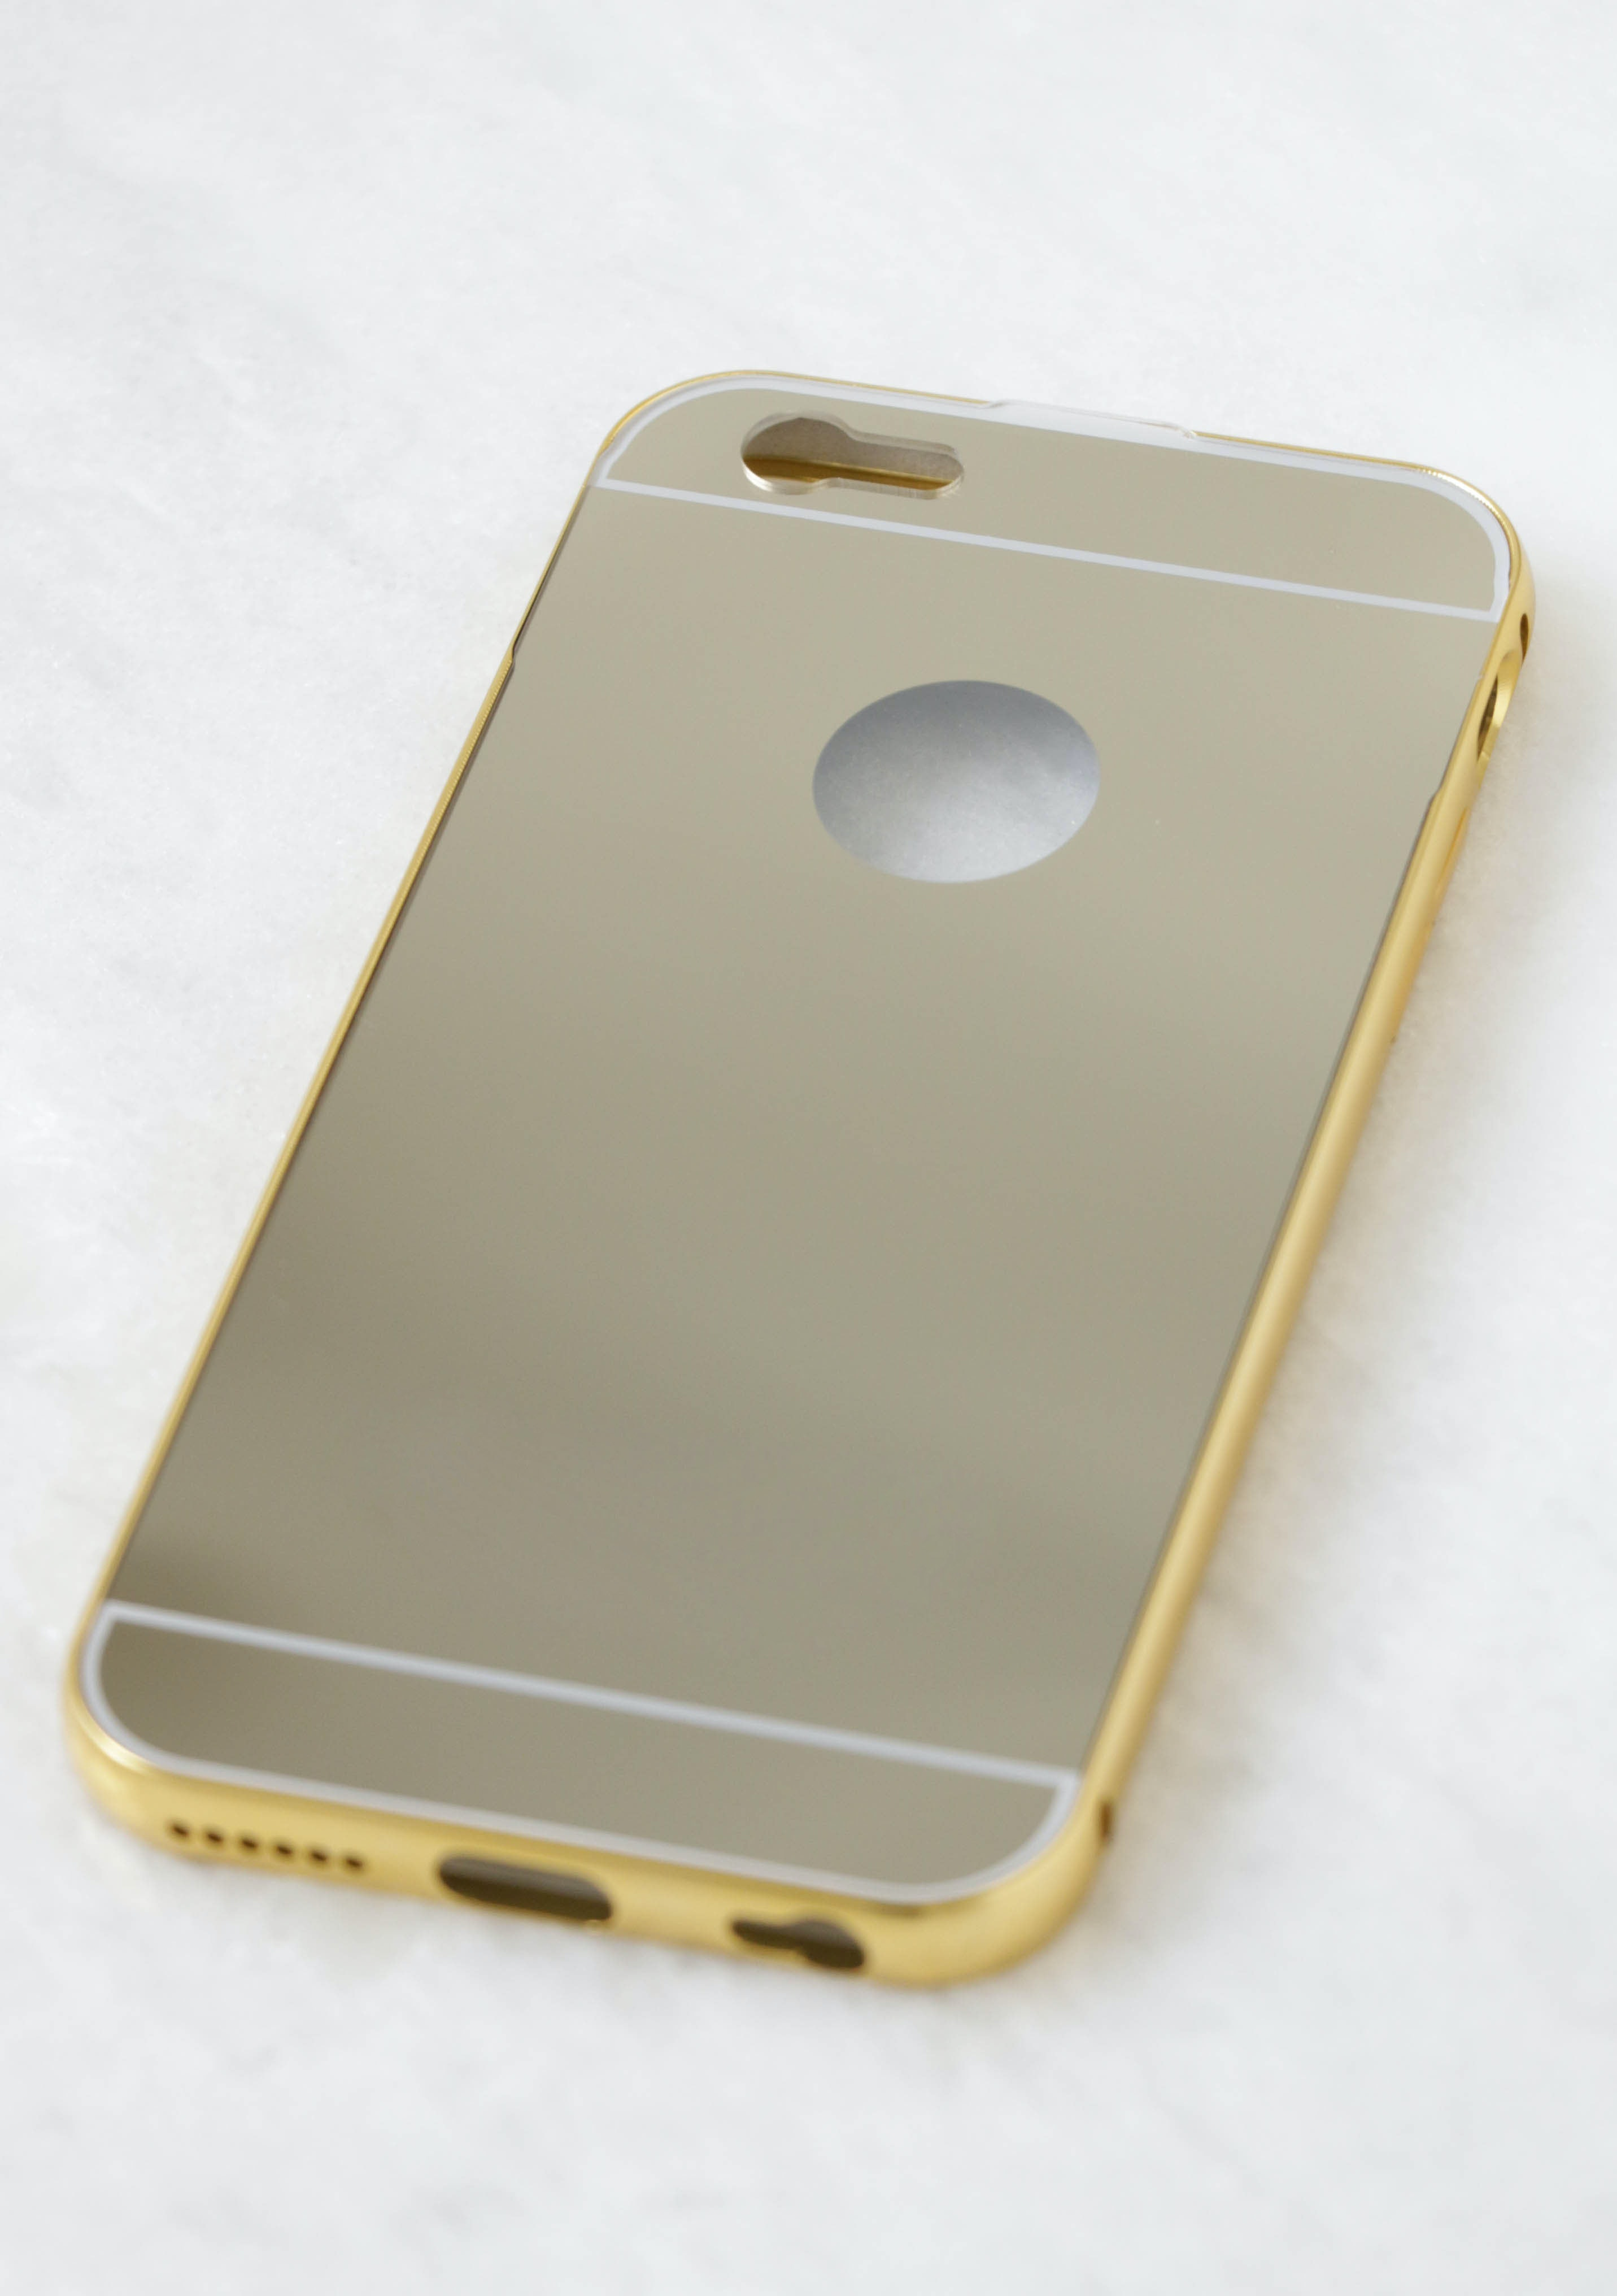 MIRROR IPHONE 6 CASE - GOLD